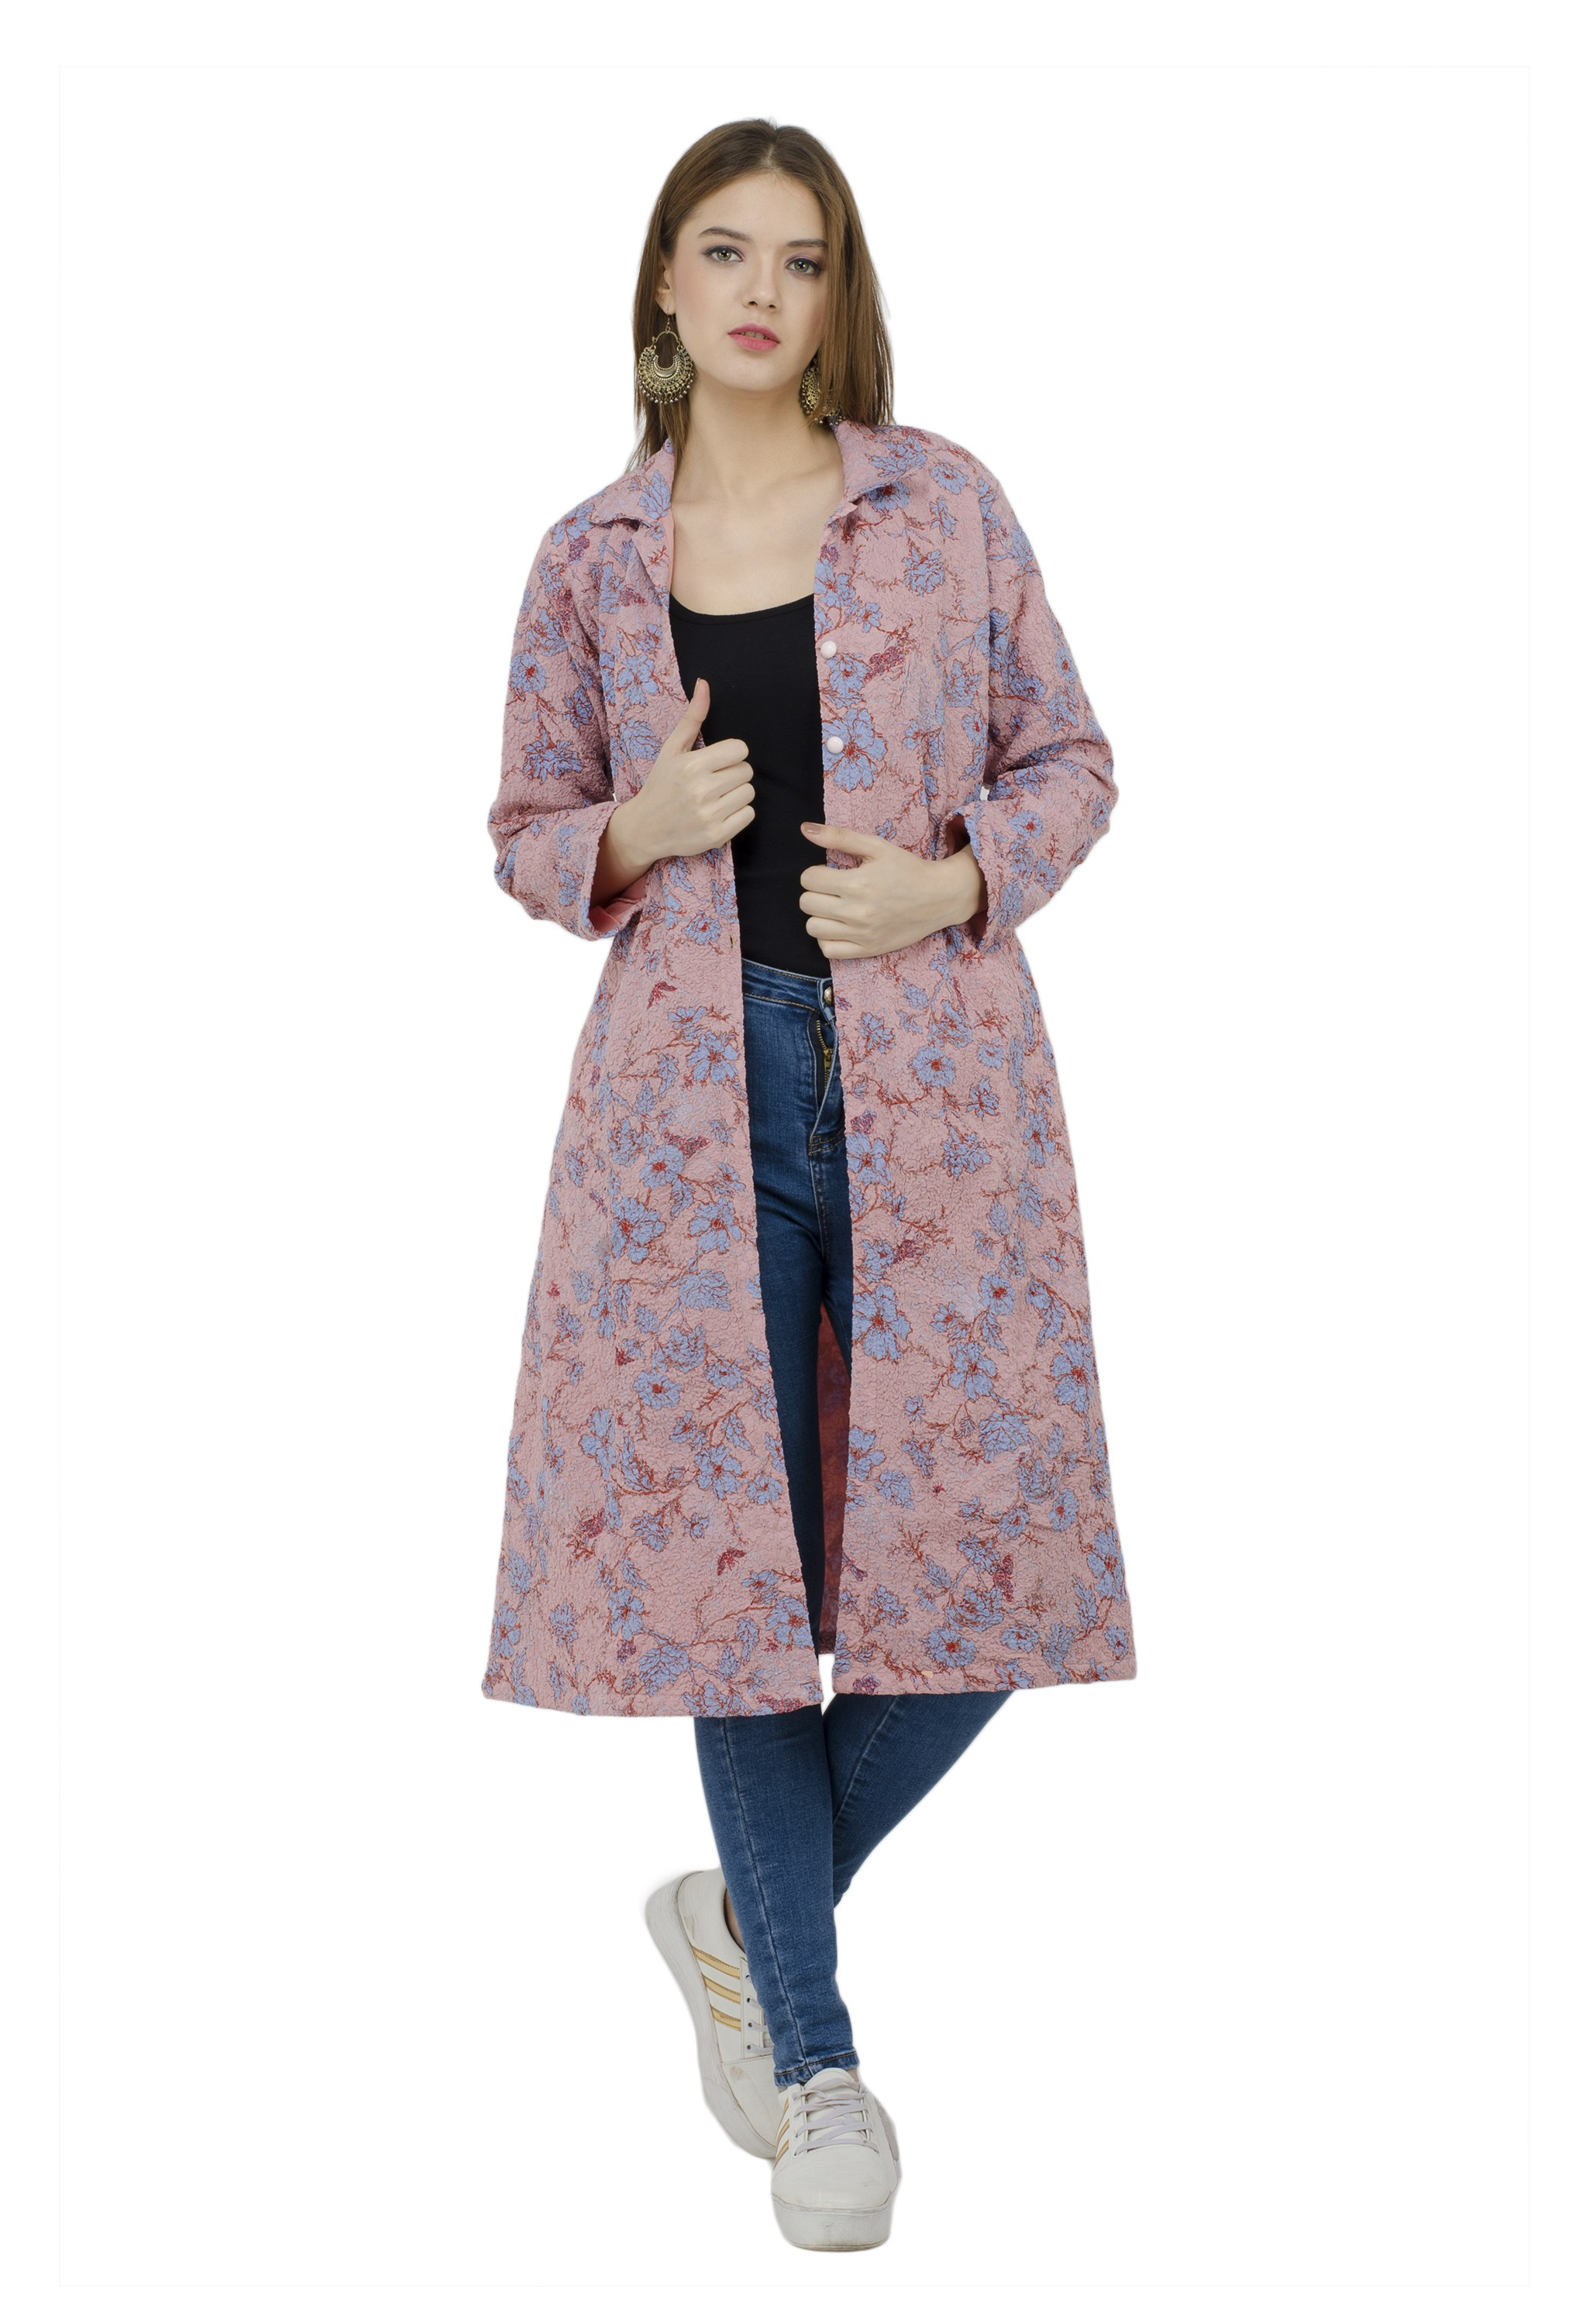 Floral Light Pink Jacket Dress from Grab Your Garb